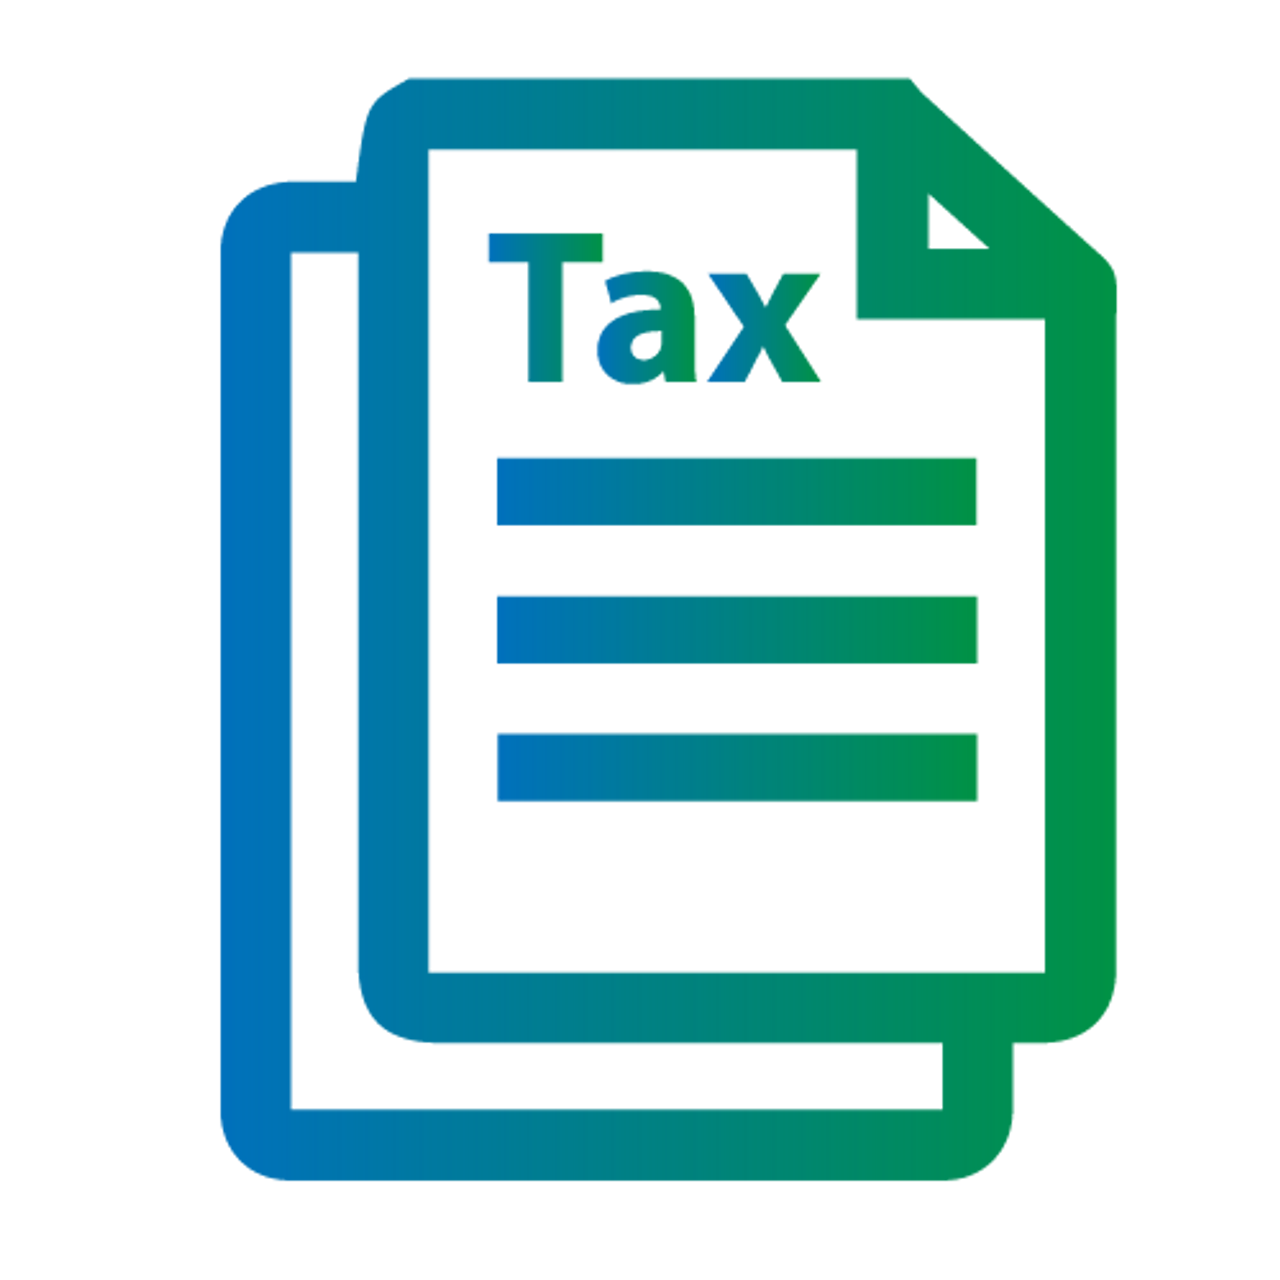 Calculate Tax on Invoice Total not Line by Line